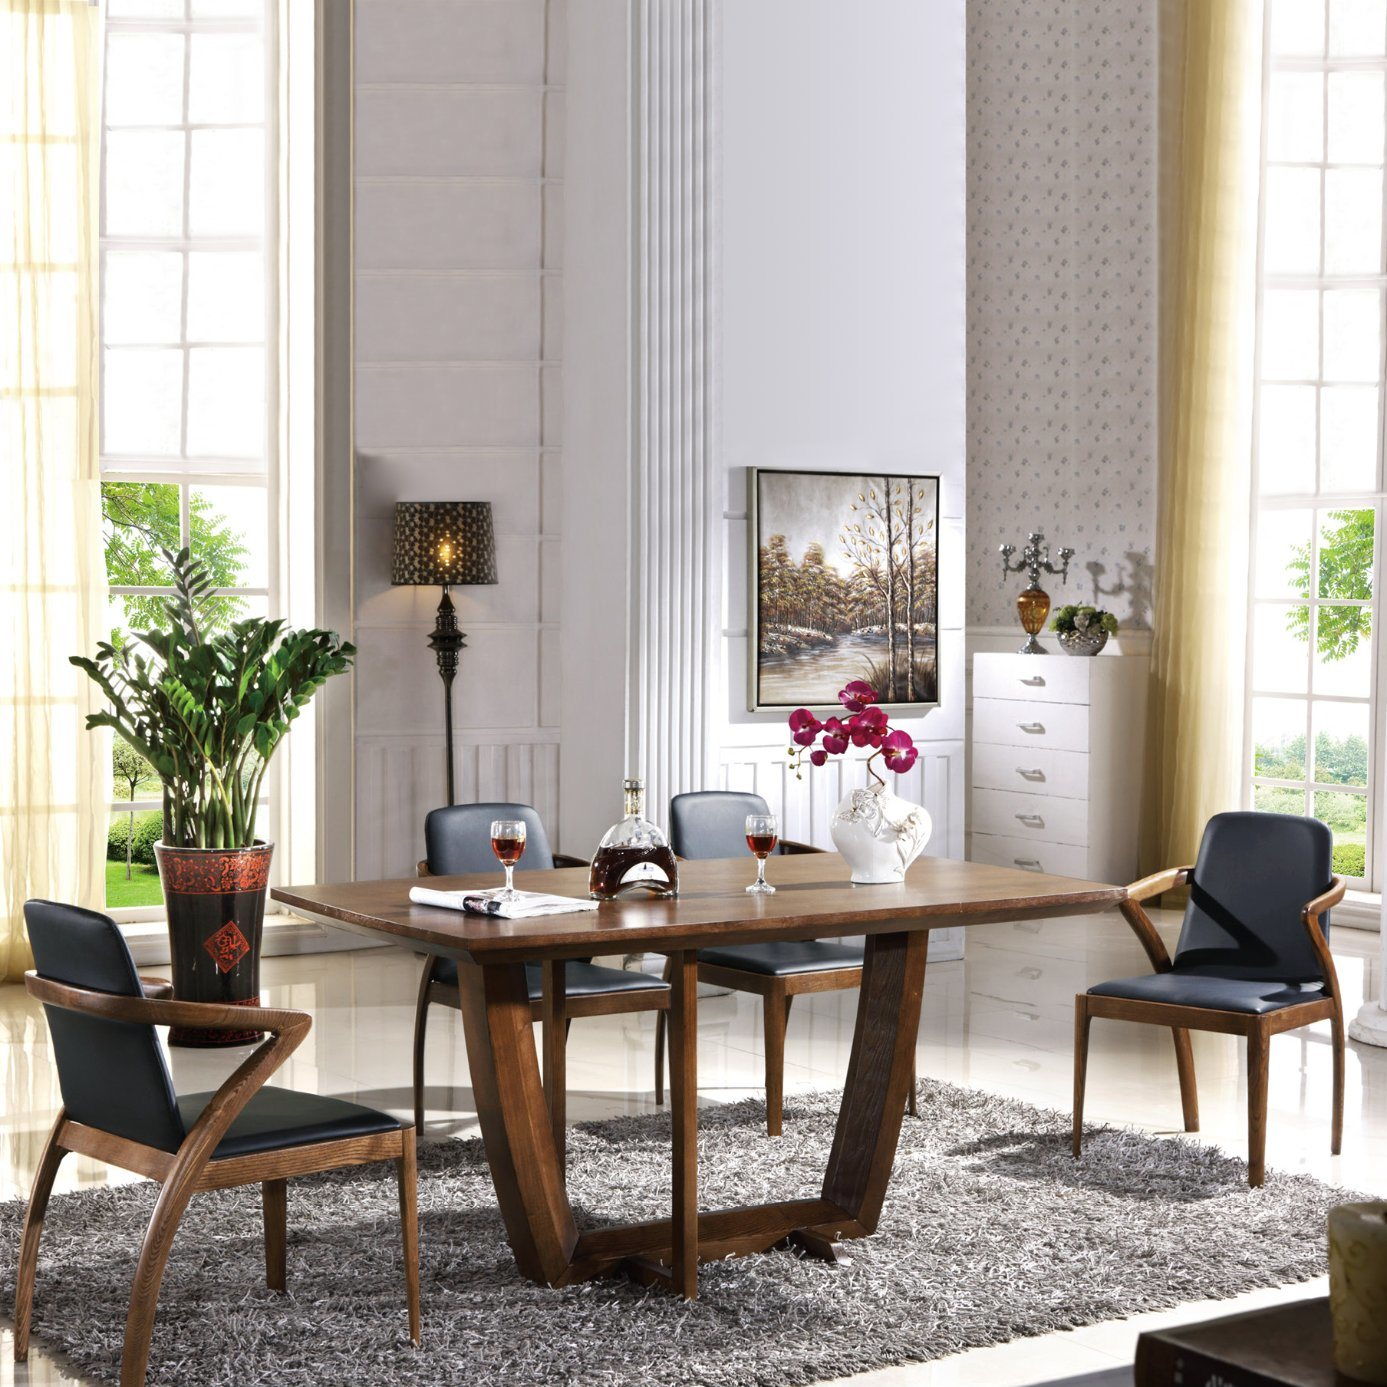 Kitchen Dining Table Set For 4 Person